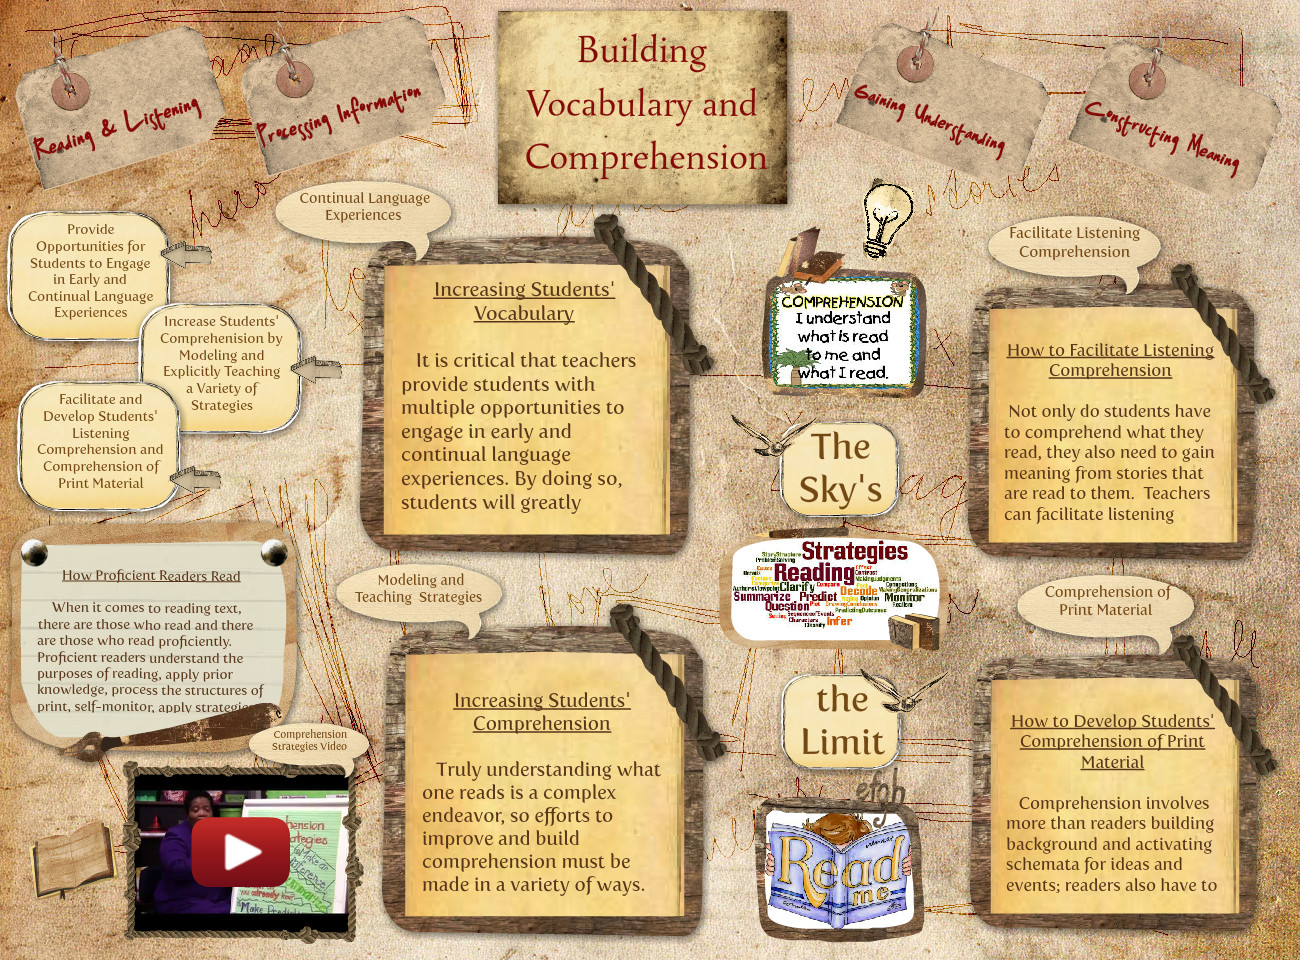 Building Vocabulary and Comprehension